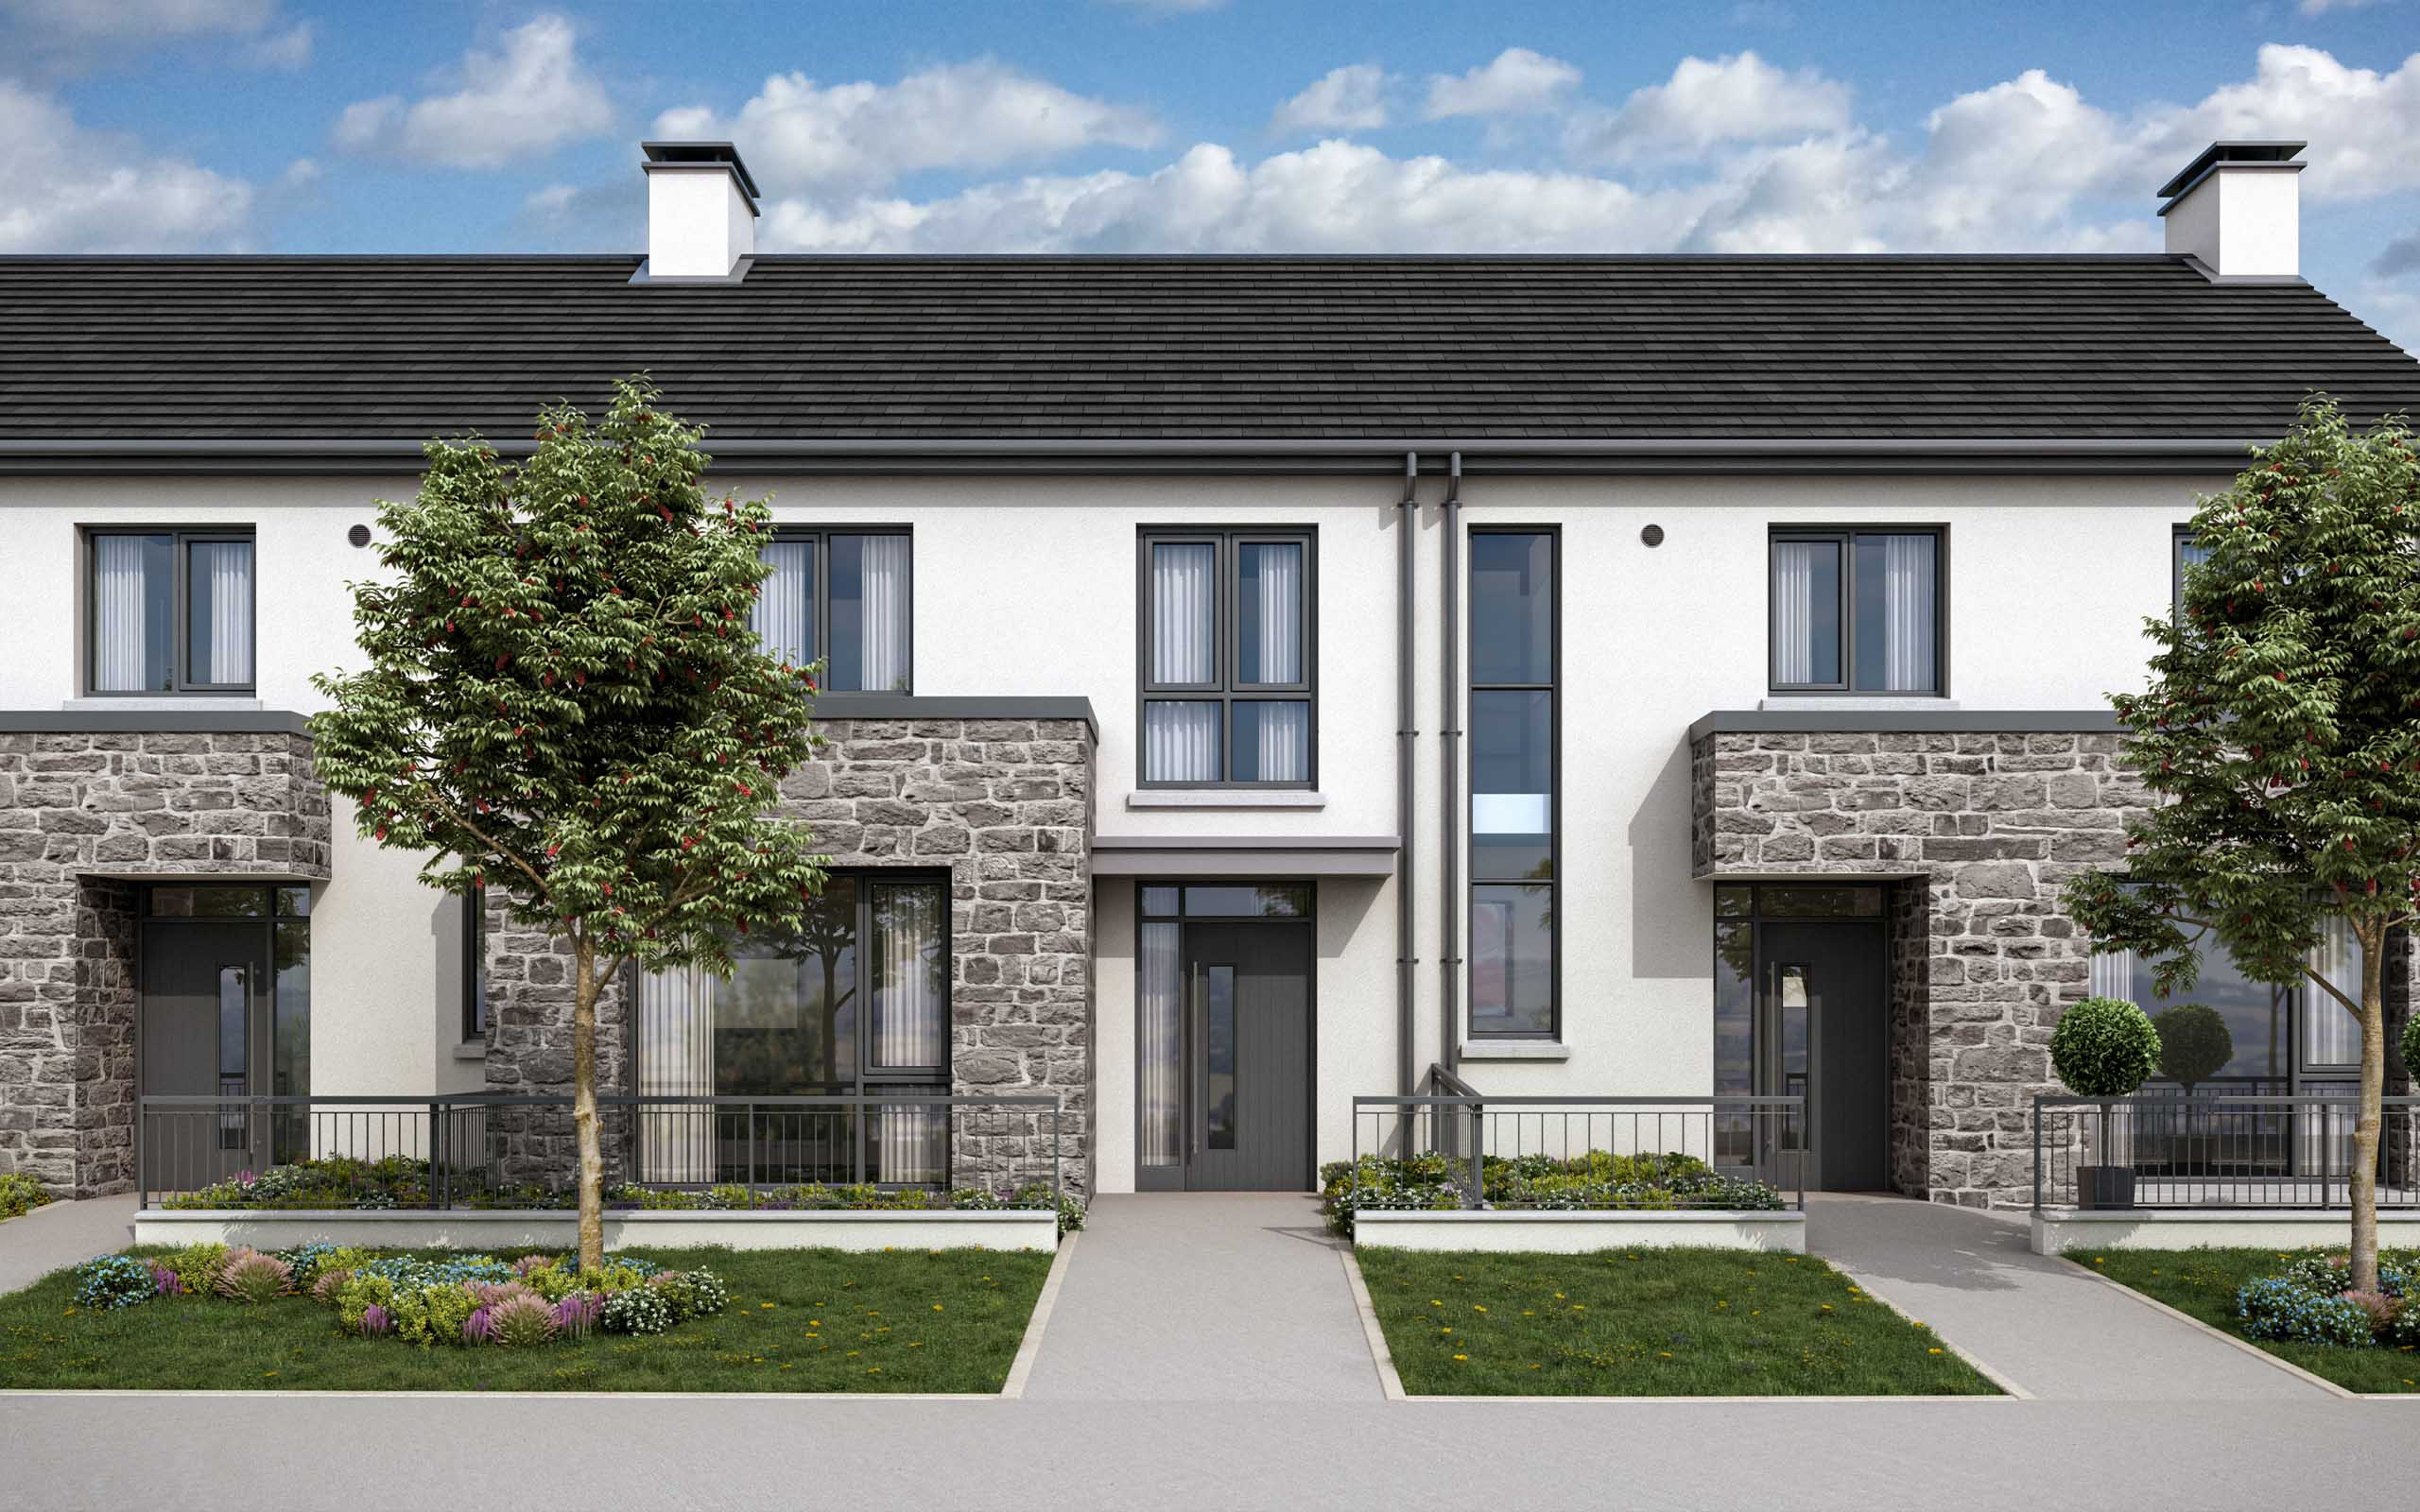 Architectural CGI-D of Oldtown Woods residential development in Celbridge, Co. Kildare.